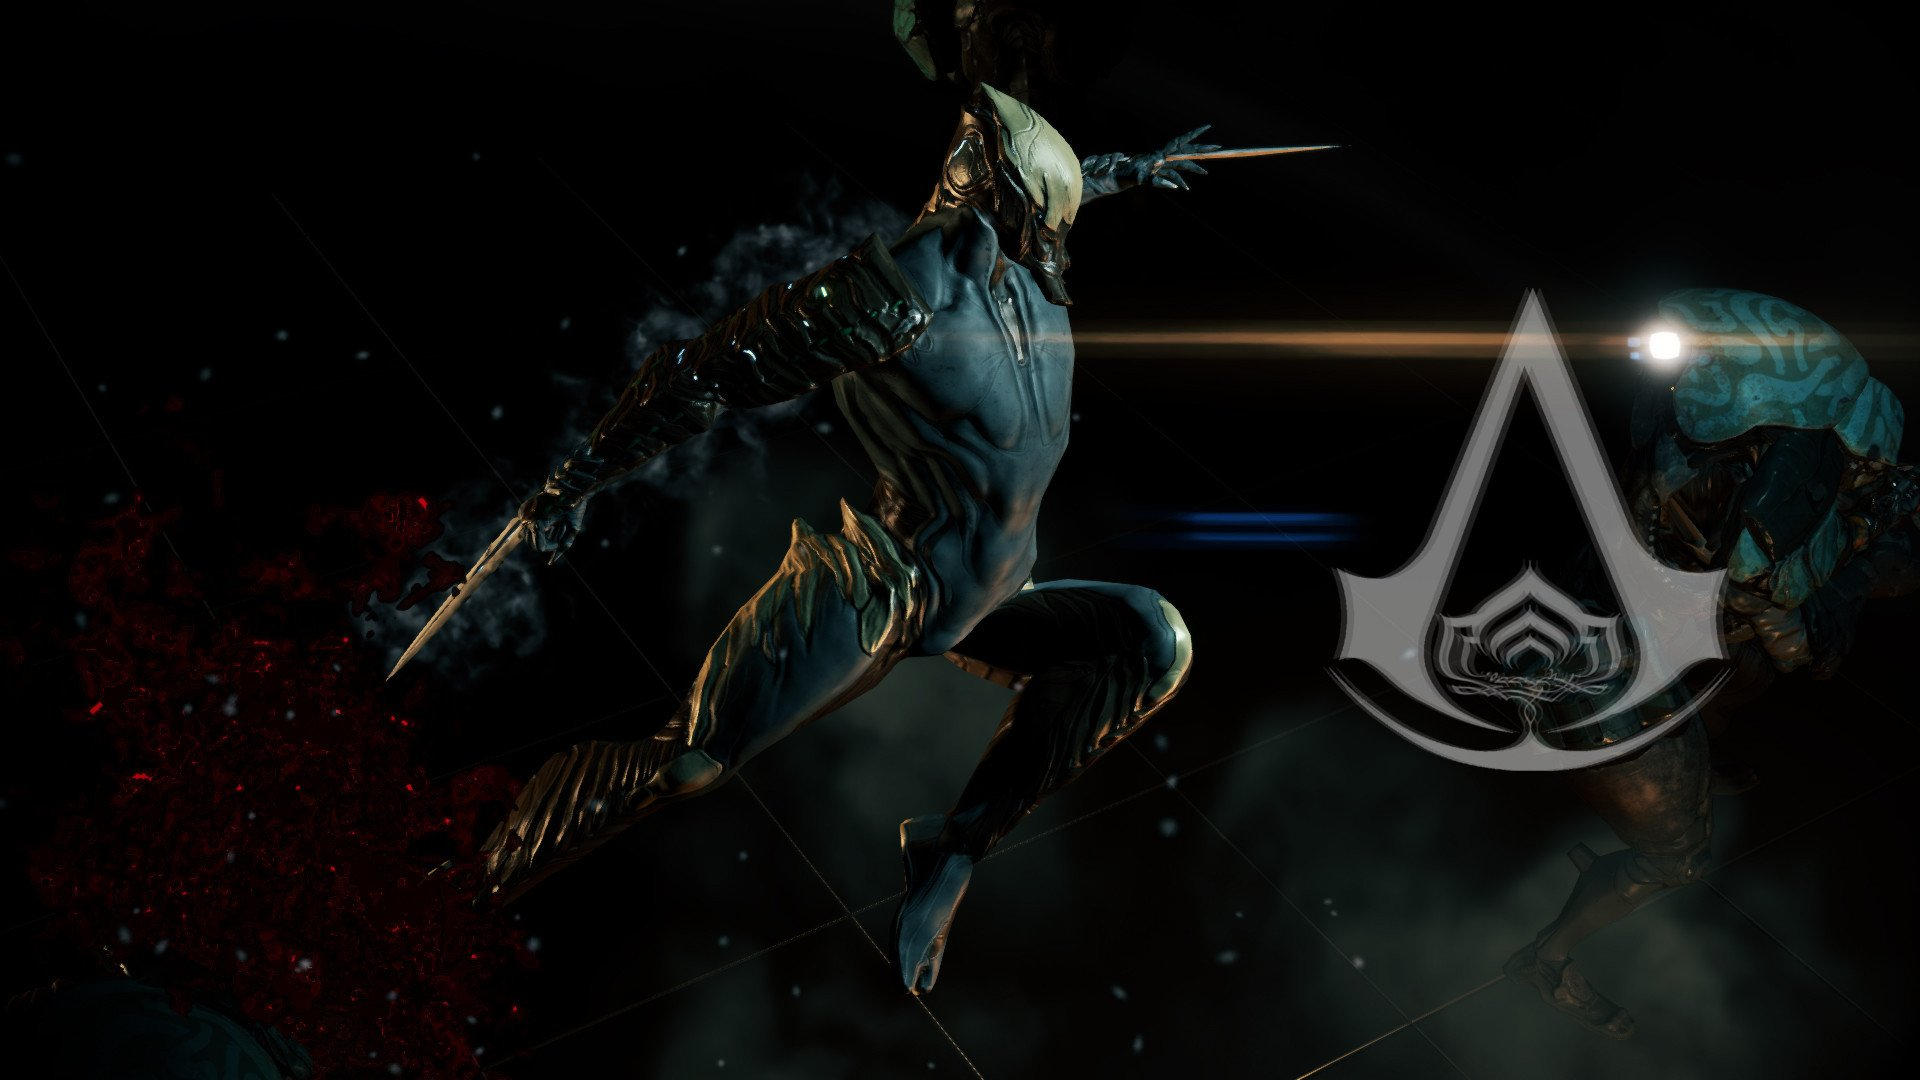 Warframe Excalibur Prime Wallpaper Warframe codex diorama 1920x1080